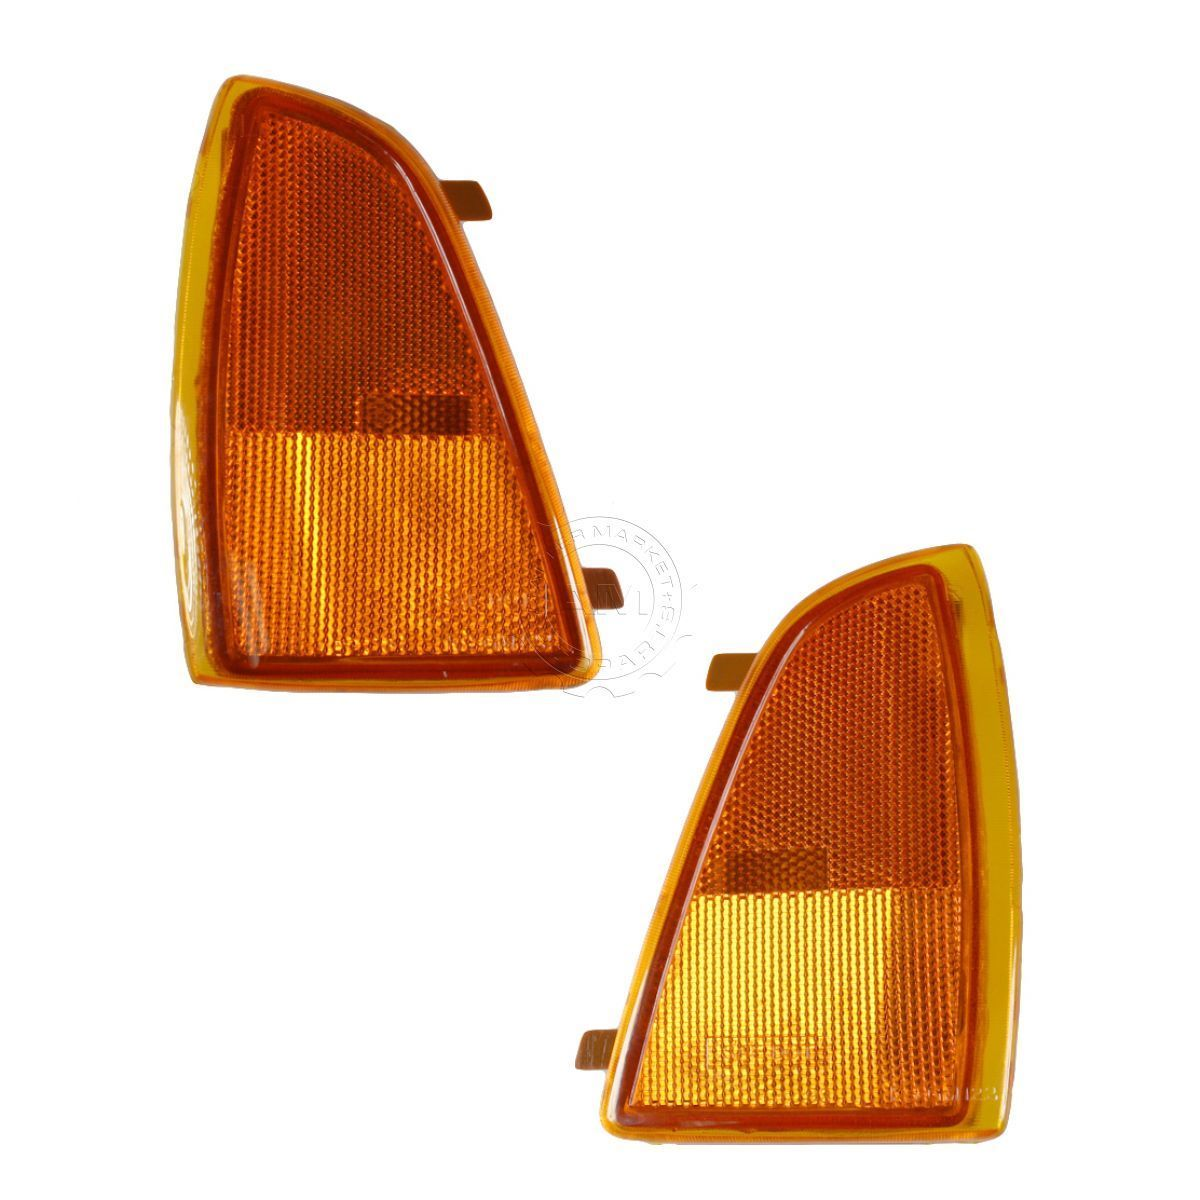 コーナーライト Marker Signal Corner Parking Light Pair Set for 95-97 Blazer Pickup Truck S10 95-97 Blazer Pickup Truck S10用マーキング信号コーナーパーキングライトペア